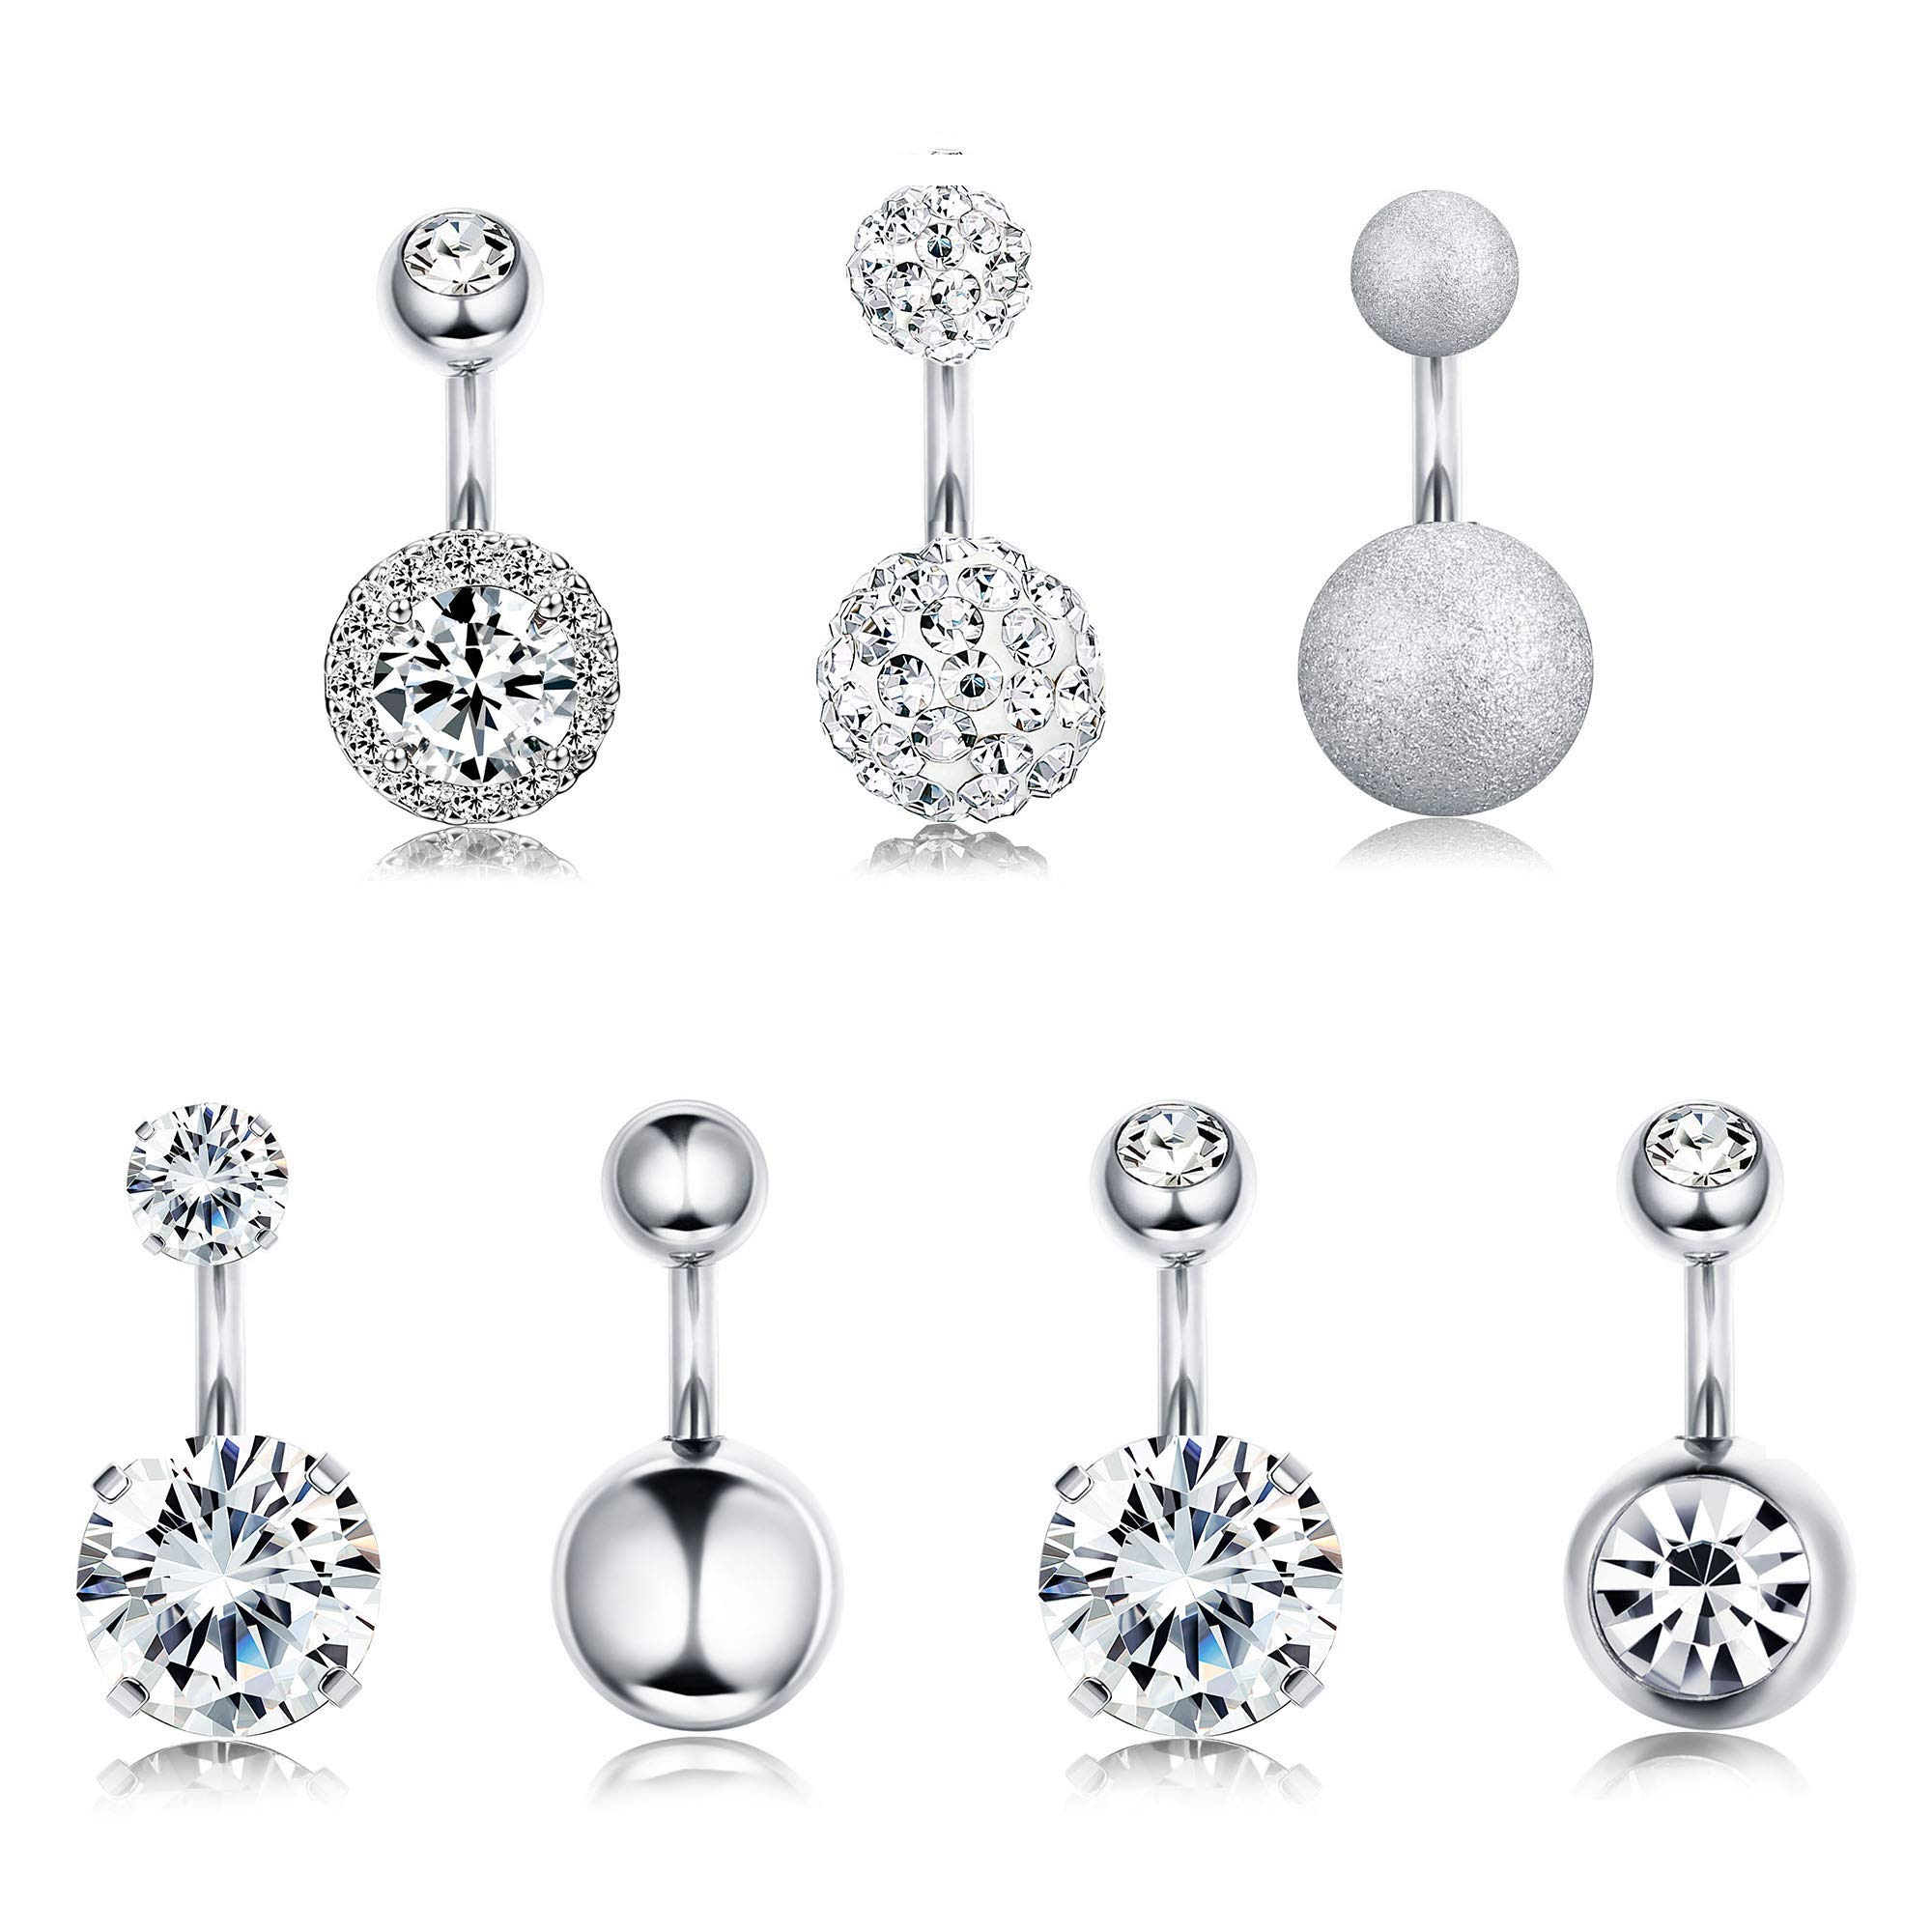 FUNRUN JEWELRY 7PCS 14G 6MM 1/4 Inch 316L Surgical Steel Belly Button Rings Belly Earring CZ Navel Rings Barbell Body Piercing Jewelry (A:Silver Tone) by FUNRUN JEWELRY